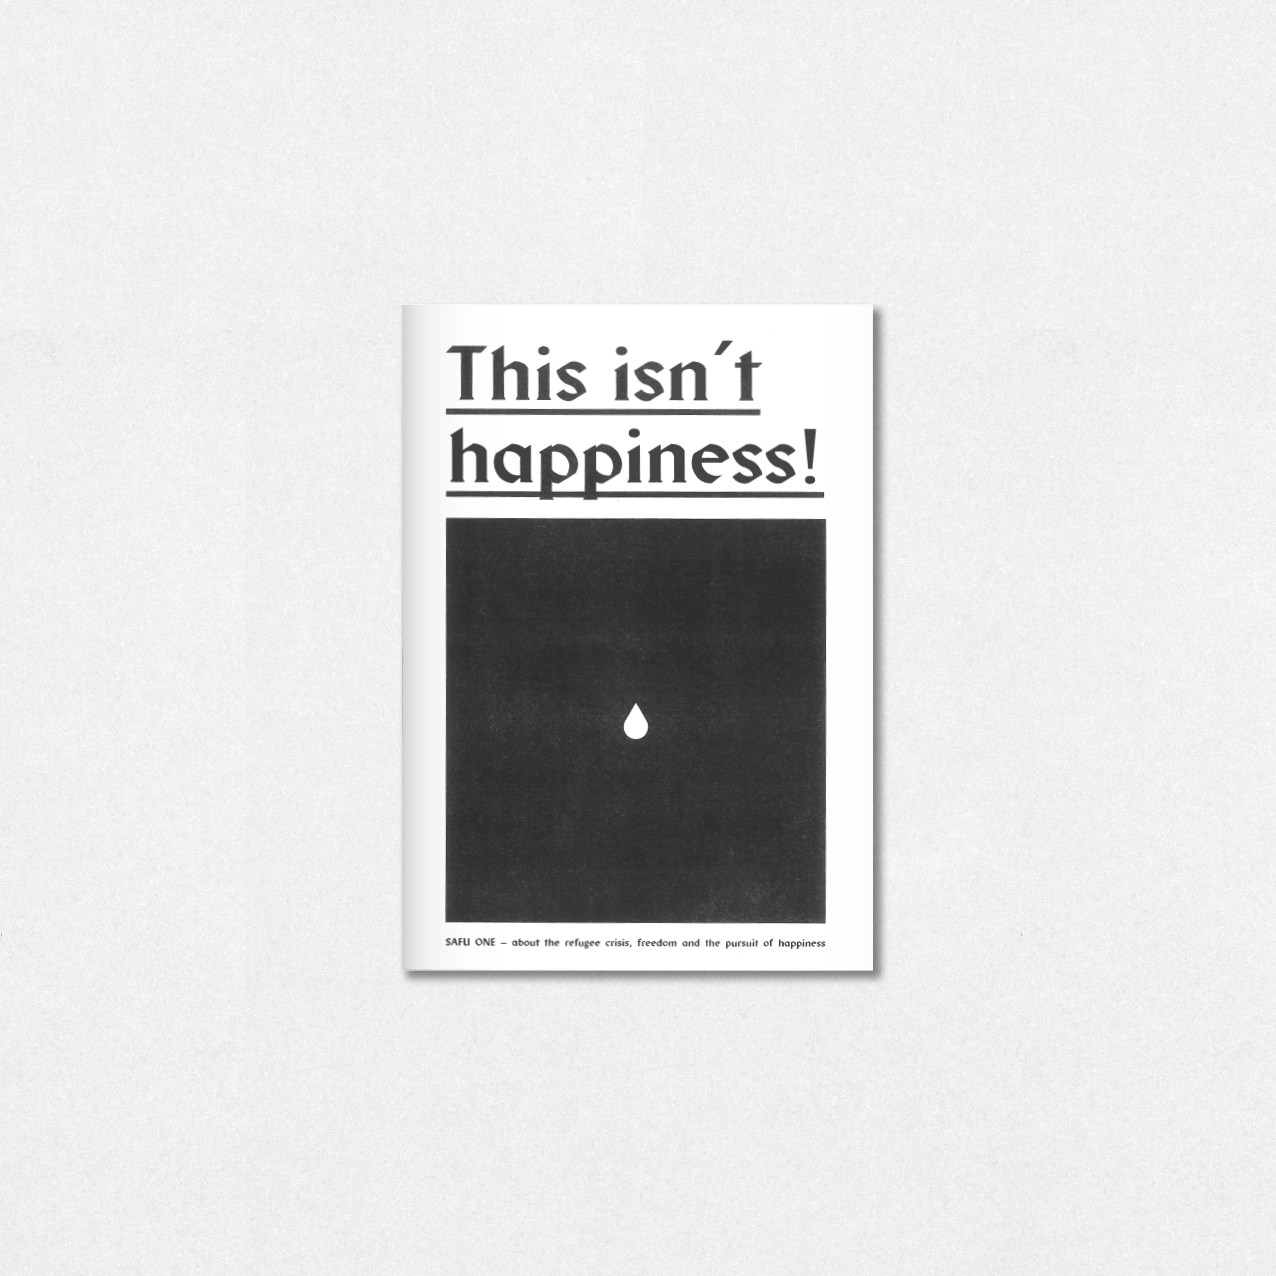 HAPPINESS - illustrated zine re - safu_one | ello